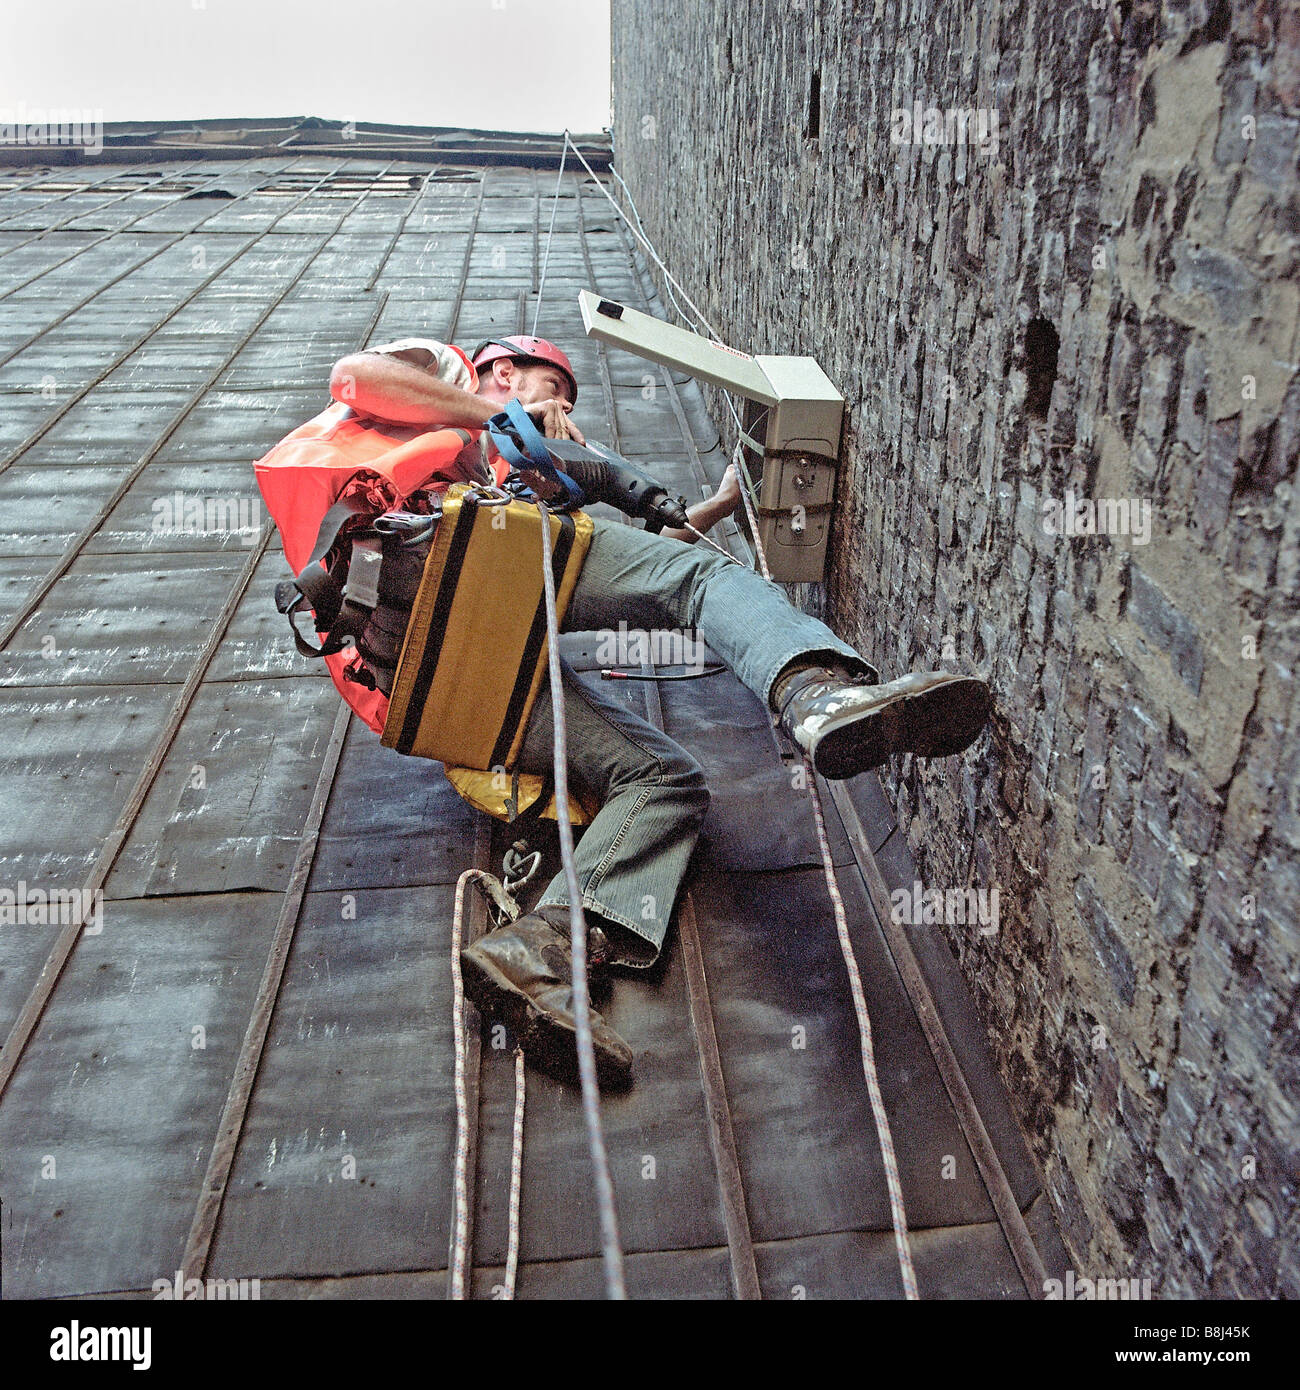 Contractor abseiling wall to install equipment to detect structural movement caused by construction on Channel Tunnel - Stock Image